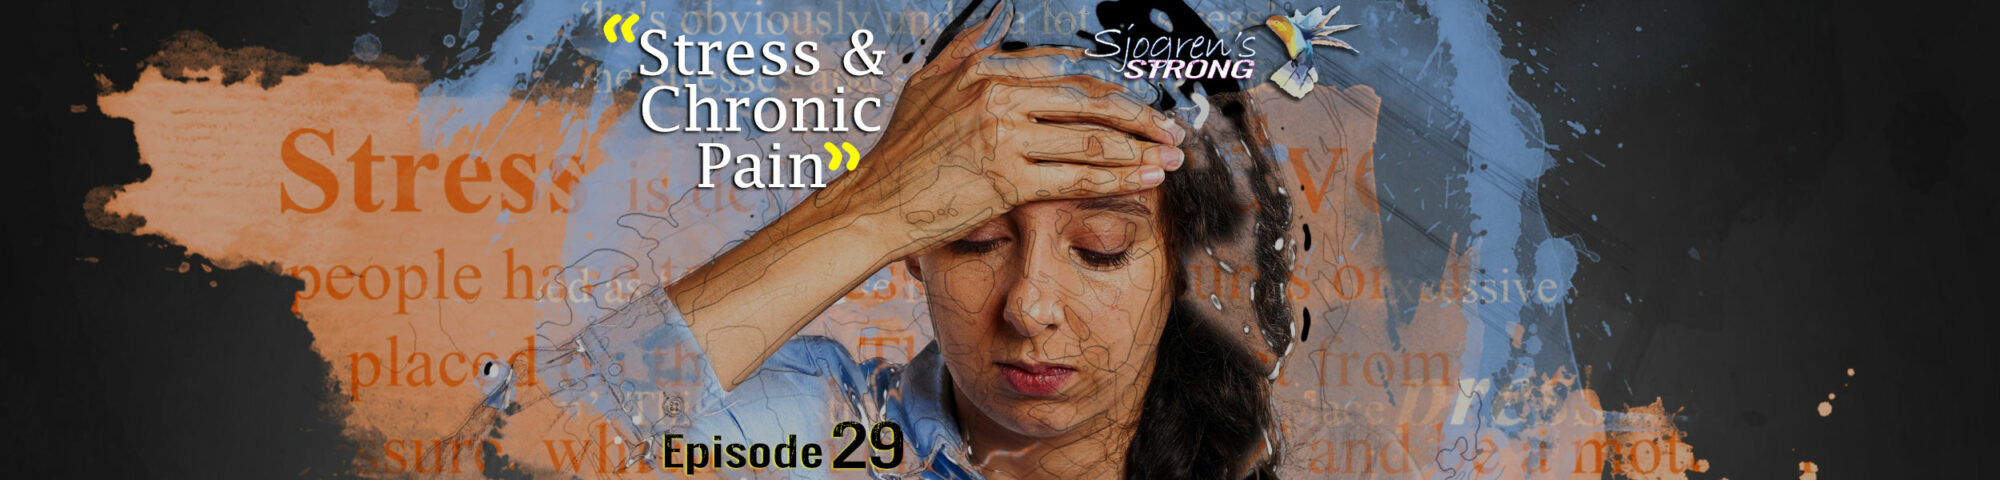 "Sjogren's Strong episode 29, ""Stress & Chronic Pain"